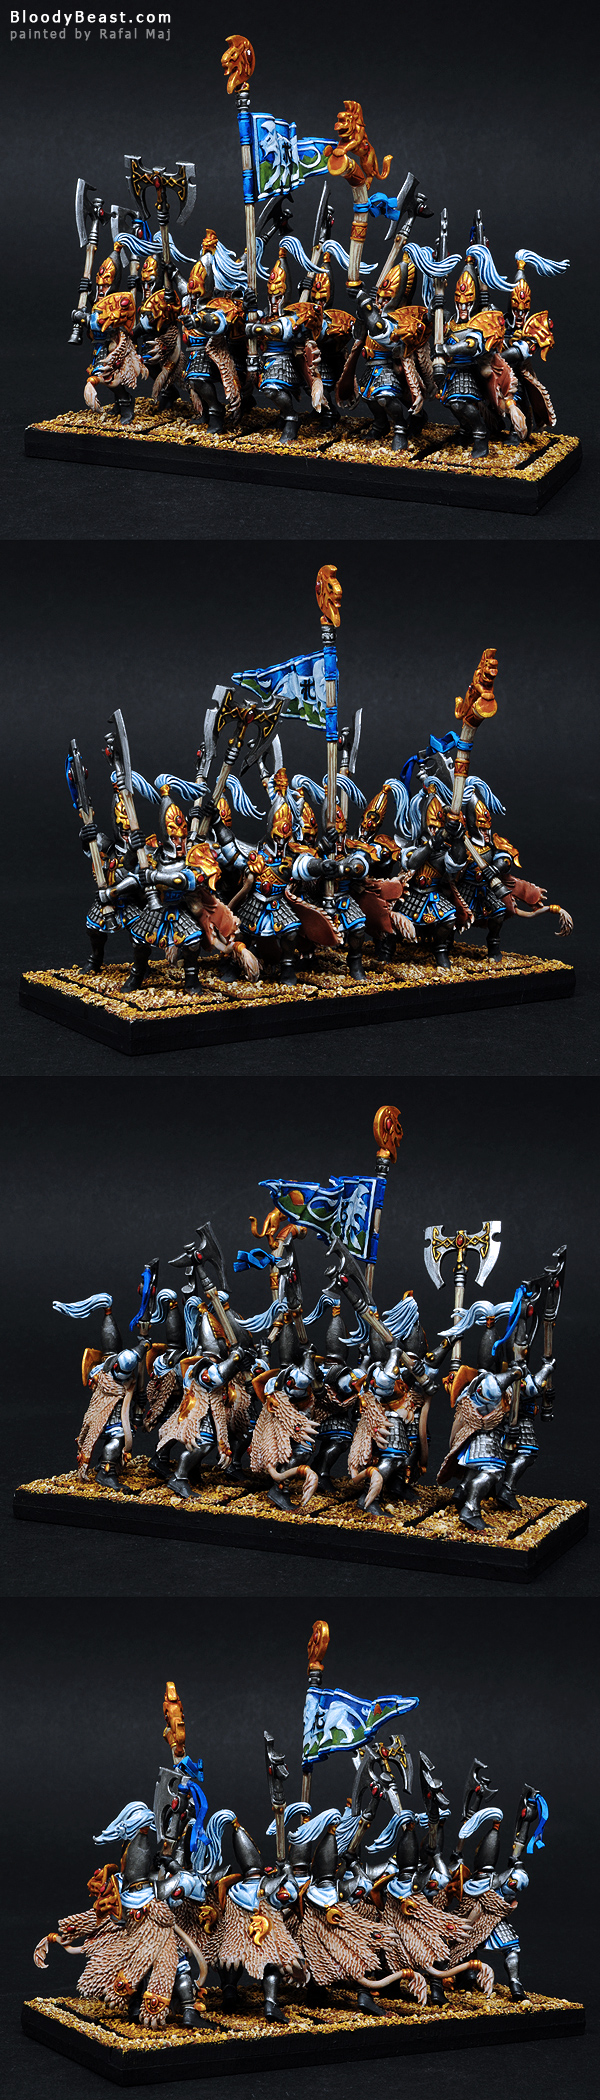 High Elves White Lions Of Chrace painted by Rafal Maj (BloodyBeast.com)